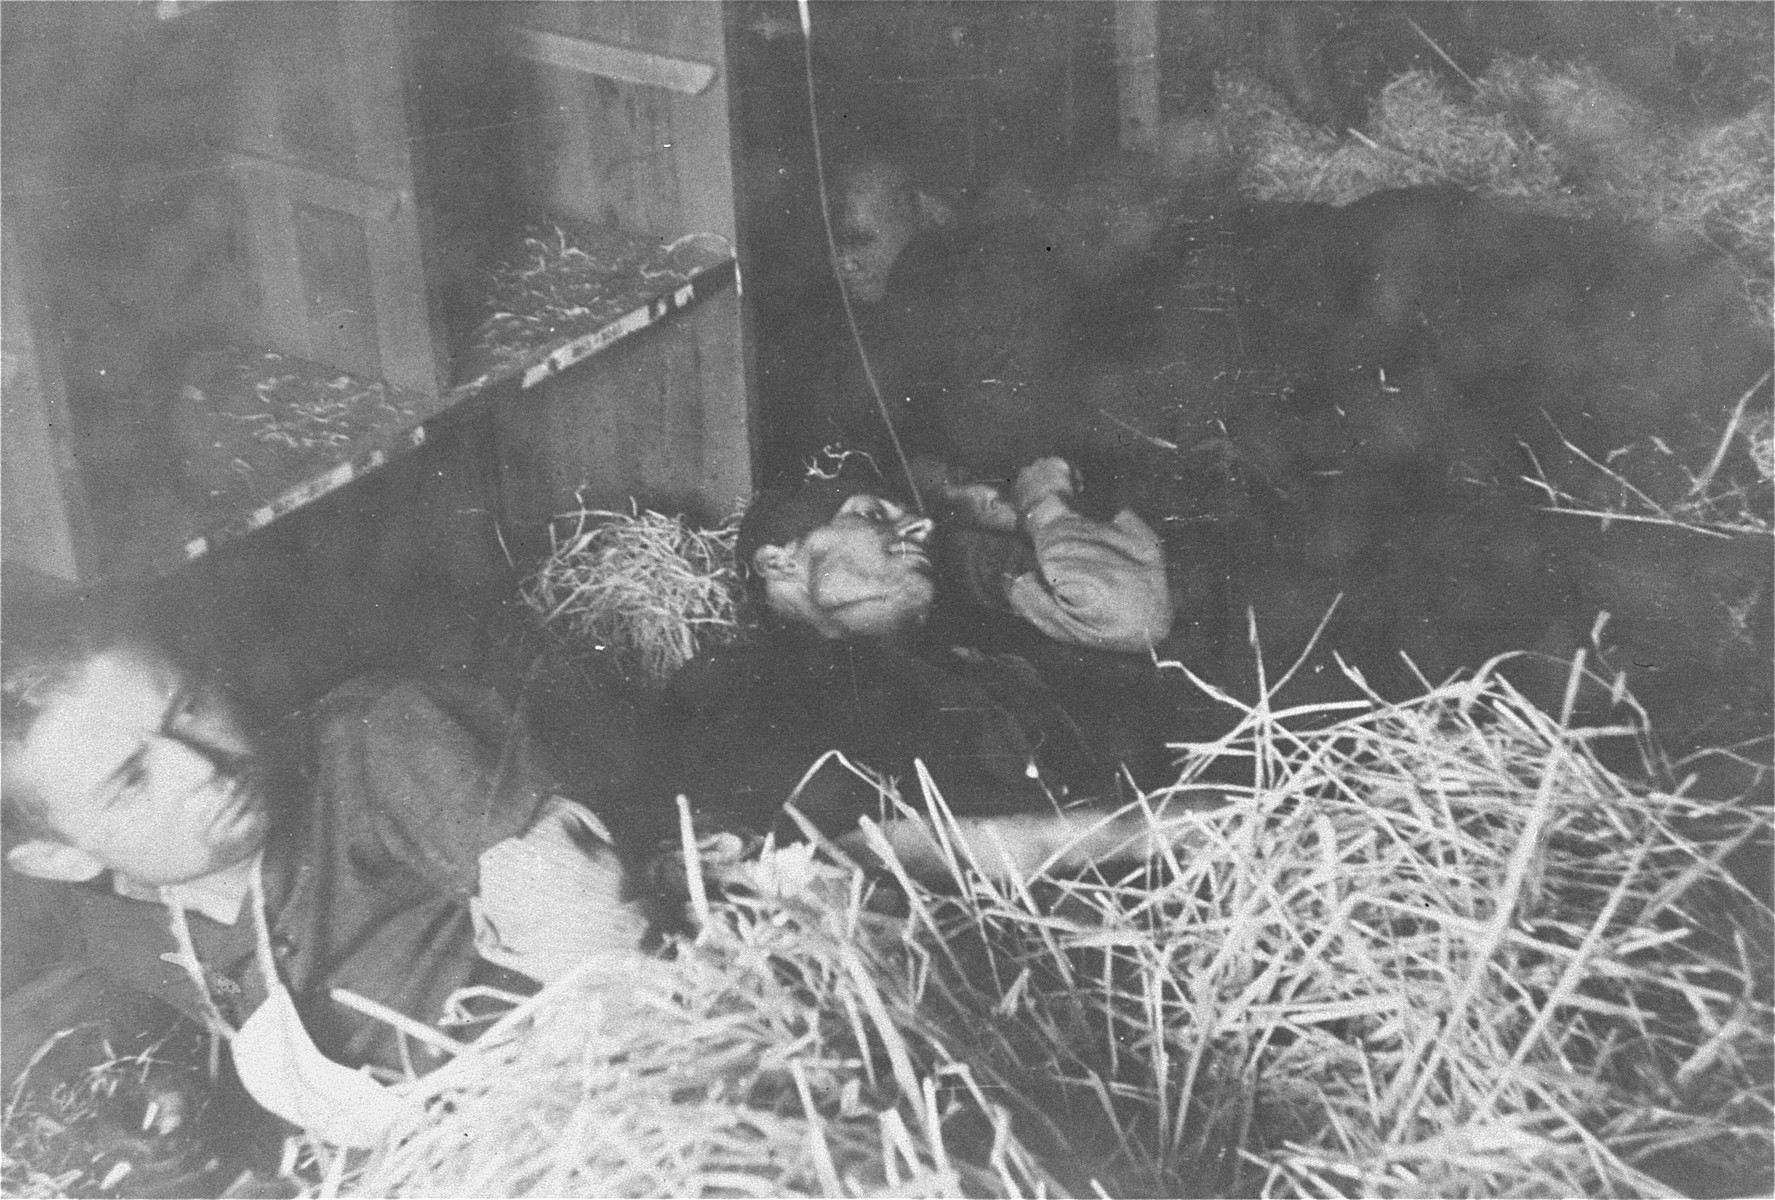 Survivors in a barracks in the Woebbelin concentration camp.